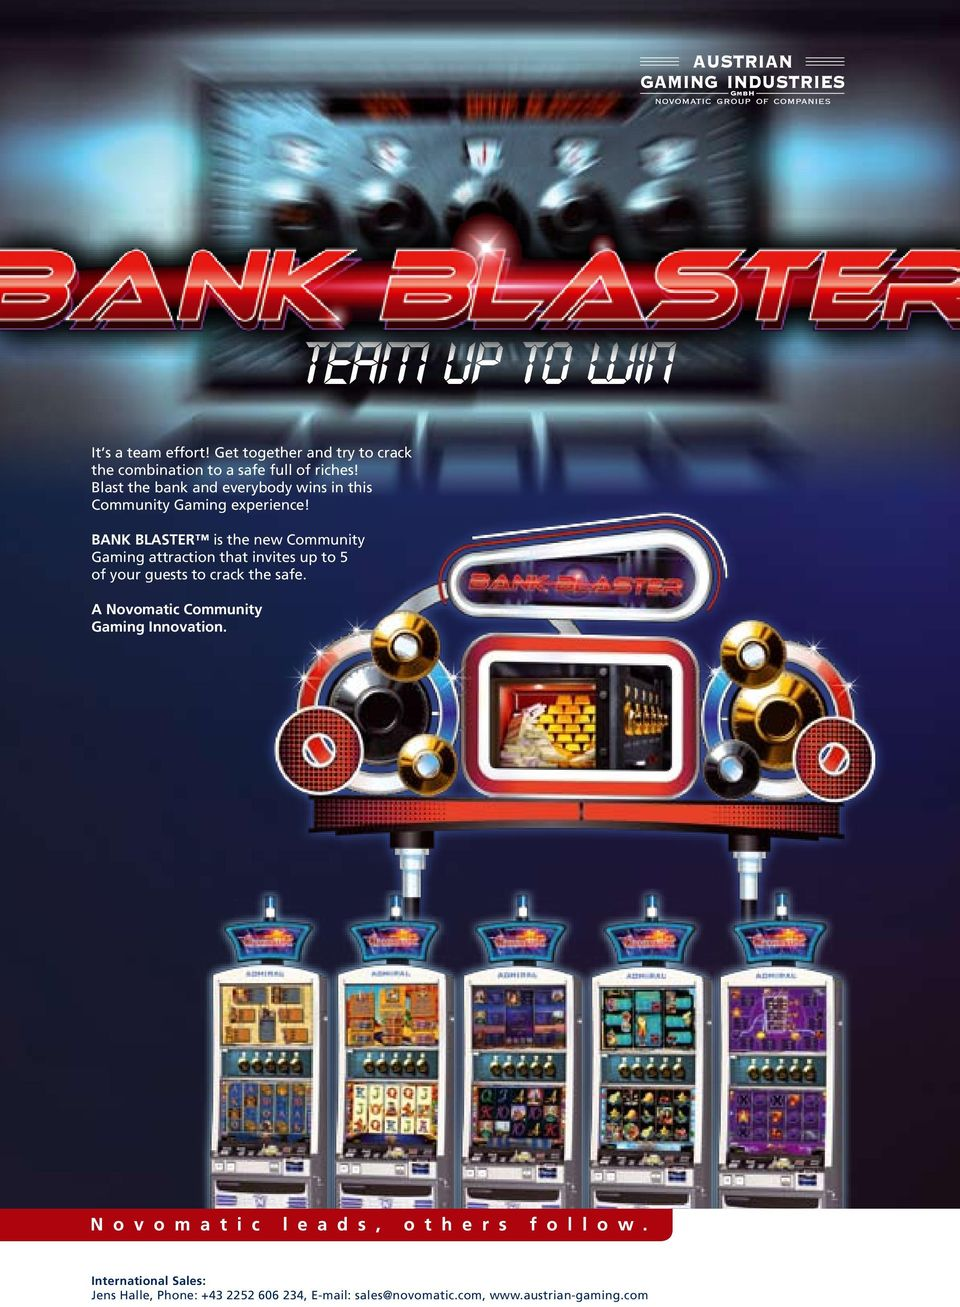 BANK BLASTER is the new Community Gaming attraction that invites up to 5 of your guests to crack the safe.